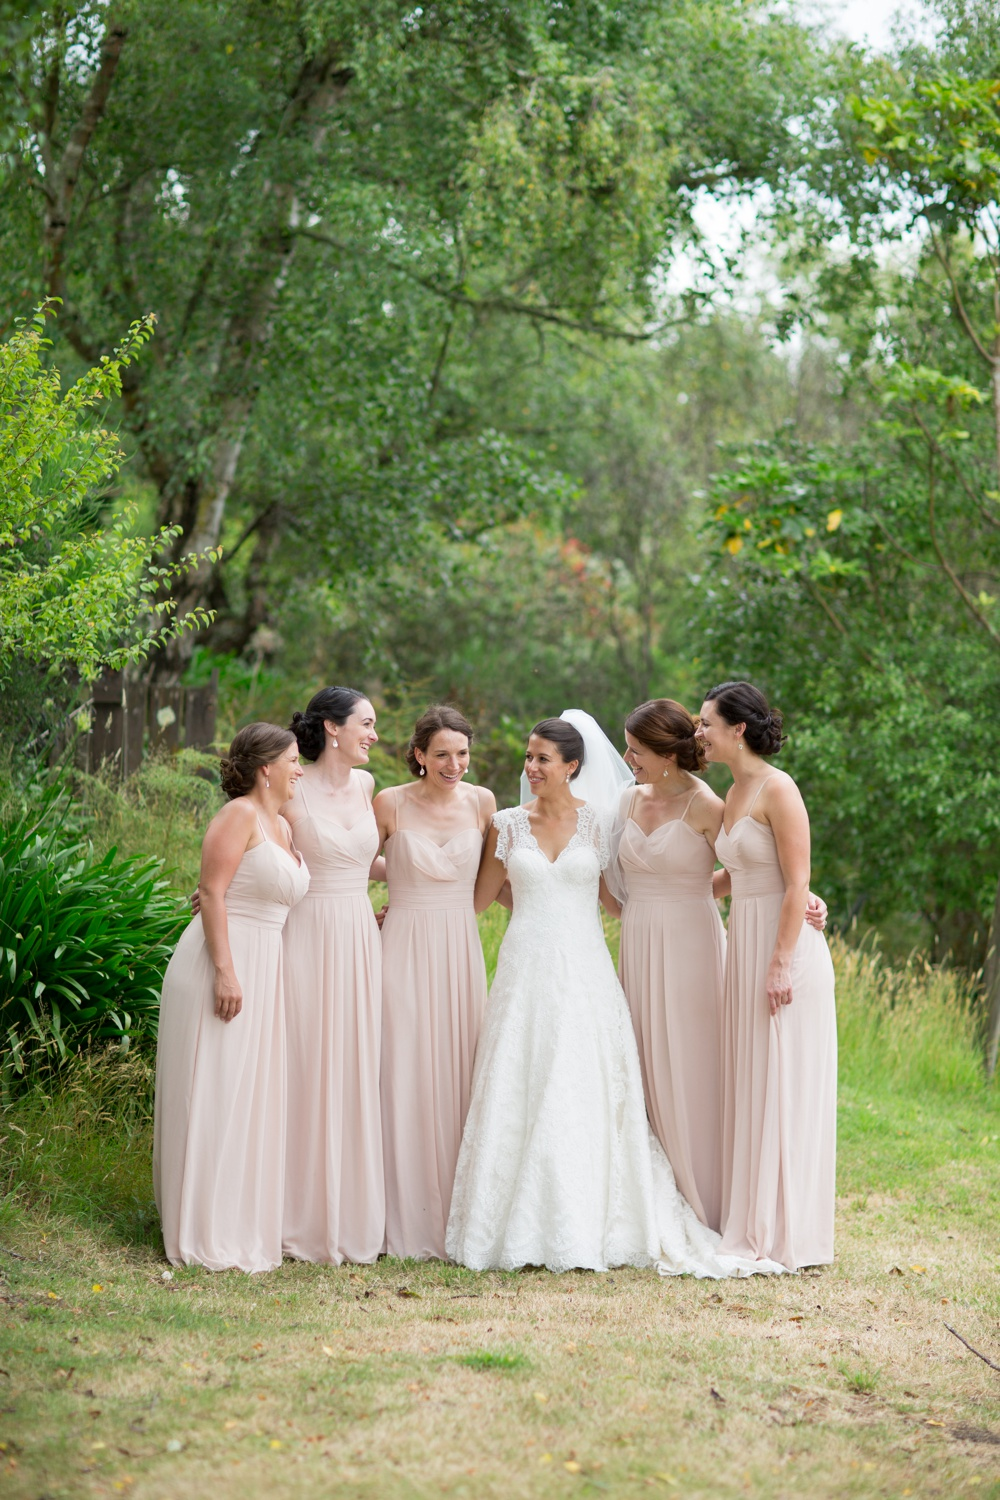 Taupo_wedding_photographer_036.jpg